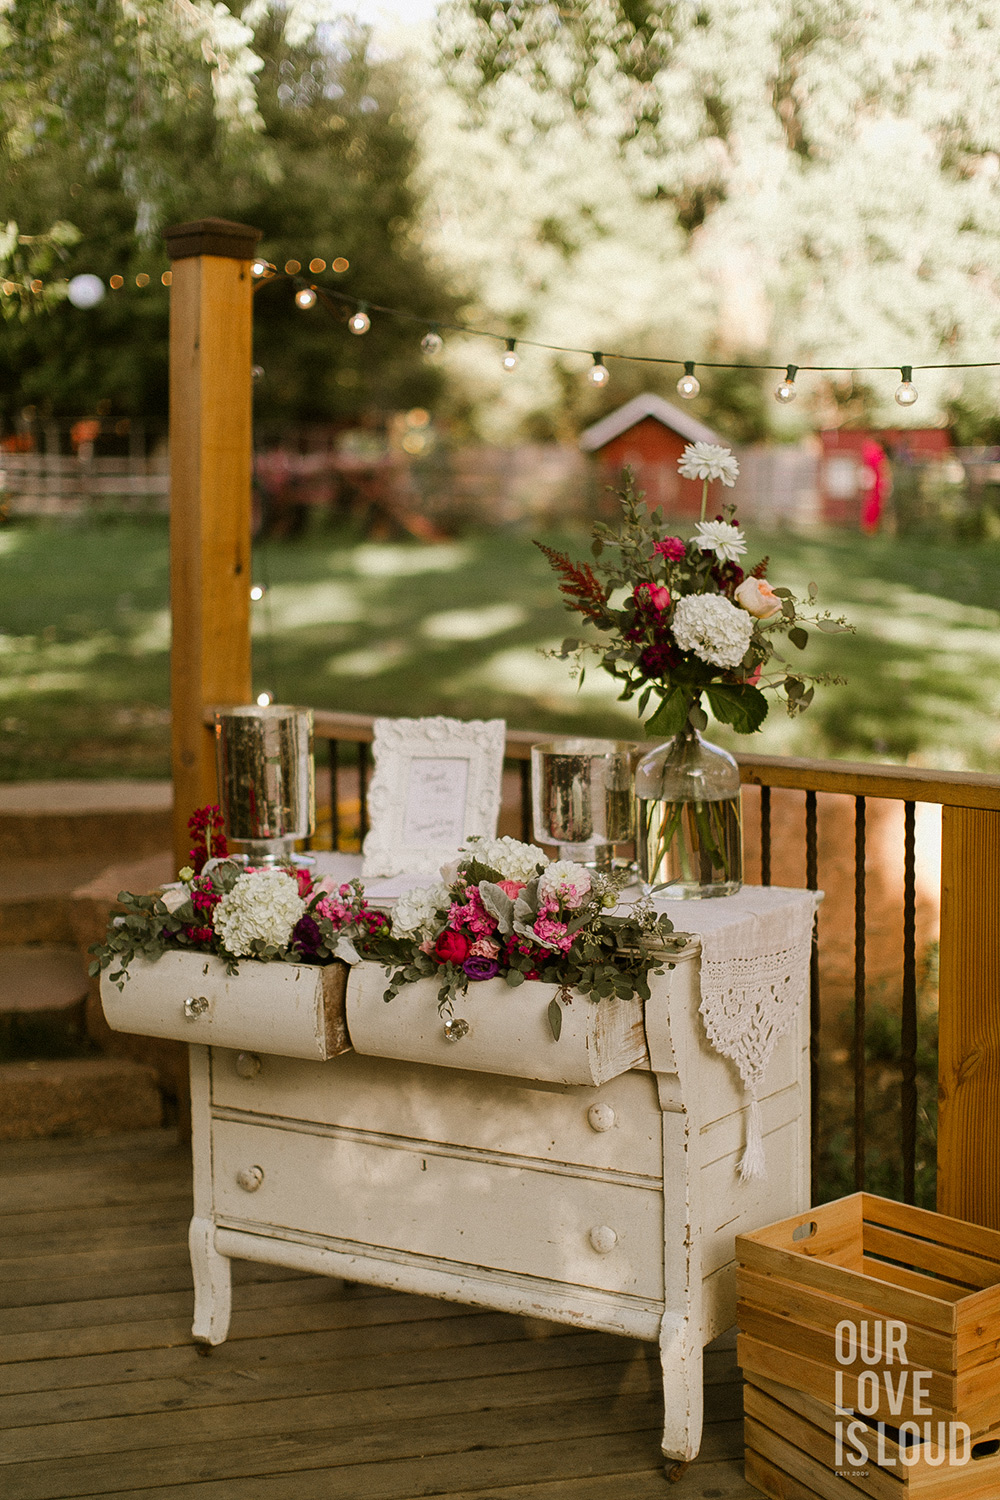 olil-lyons-farmette-colorado-wedding-venue-09.jpg